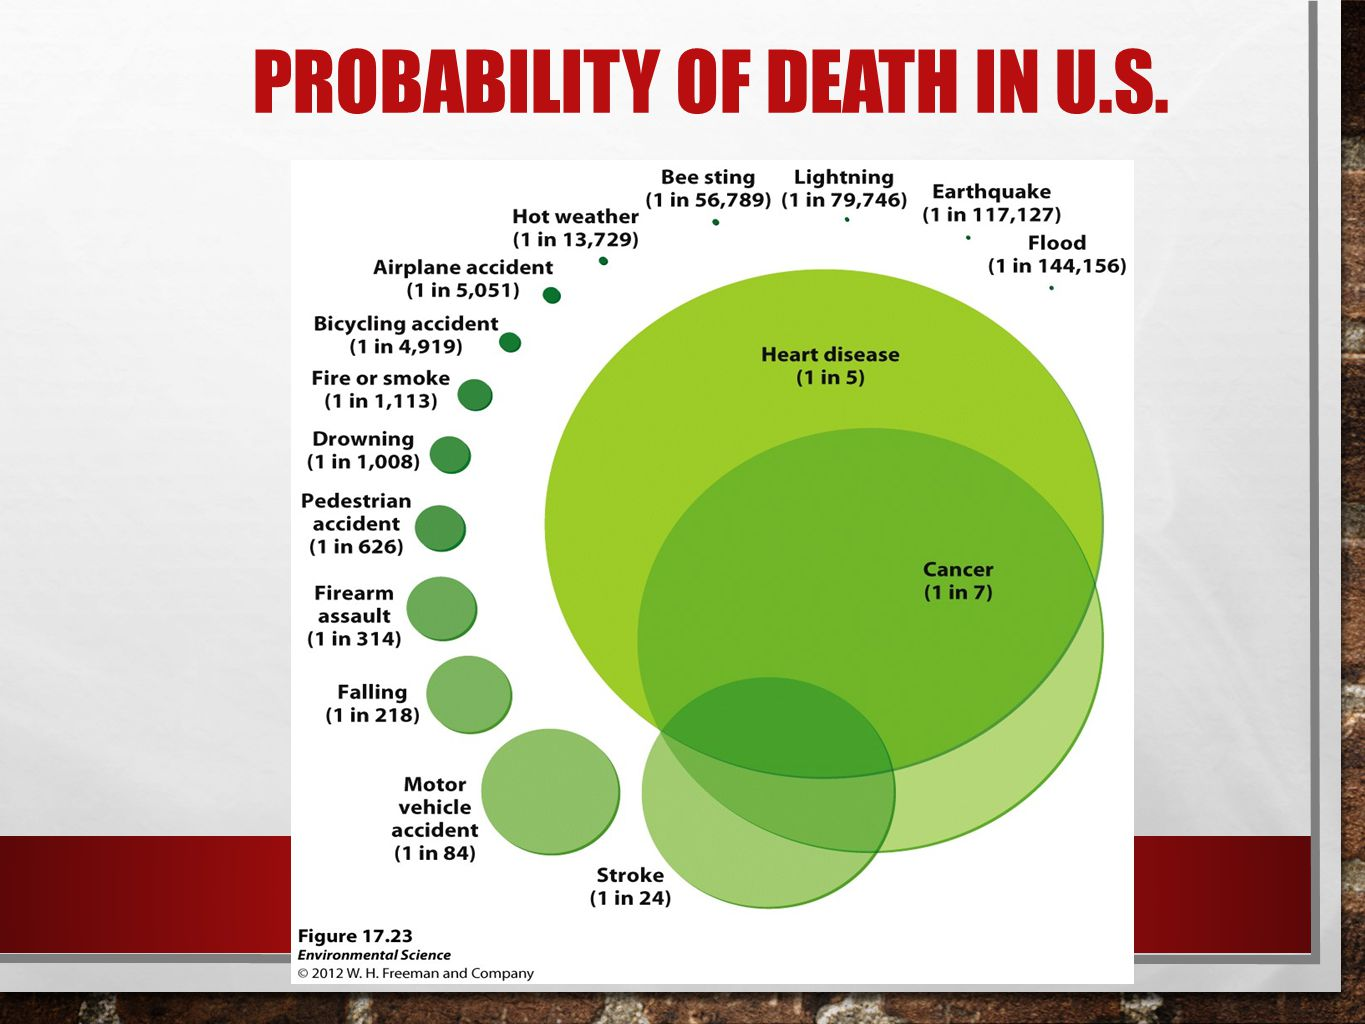 Probability of death in U.S.